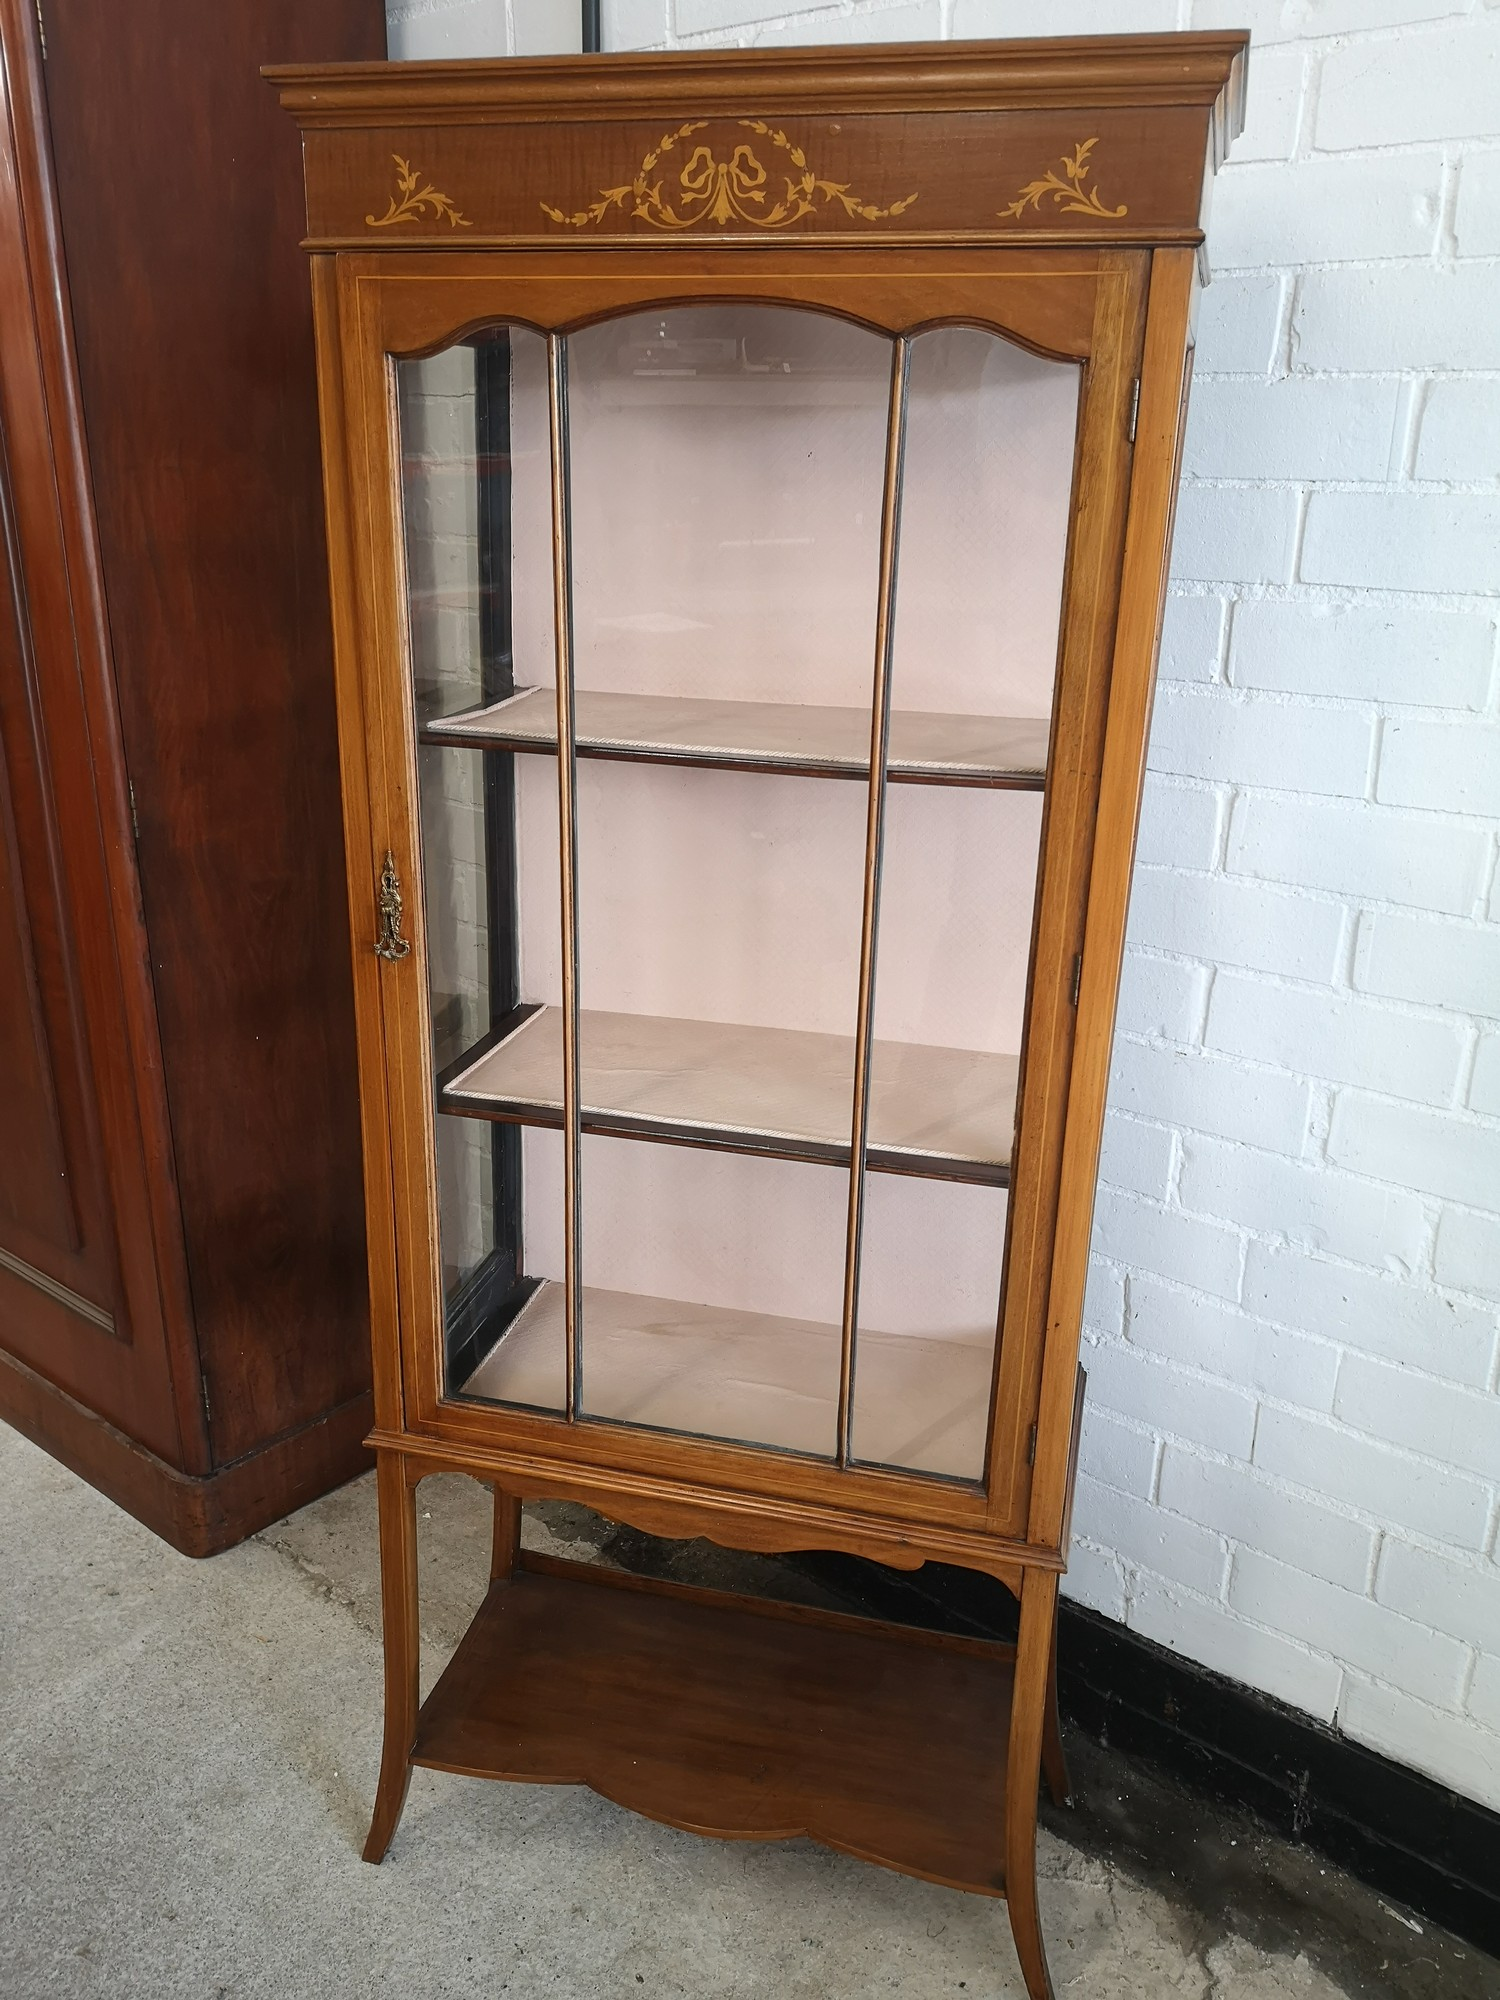 Beautiful Edwardian Inlaid 3 section display cabinet with inlays to top. - Image 2 of 4